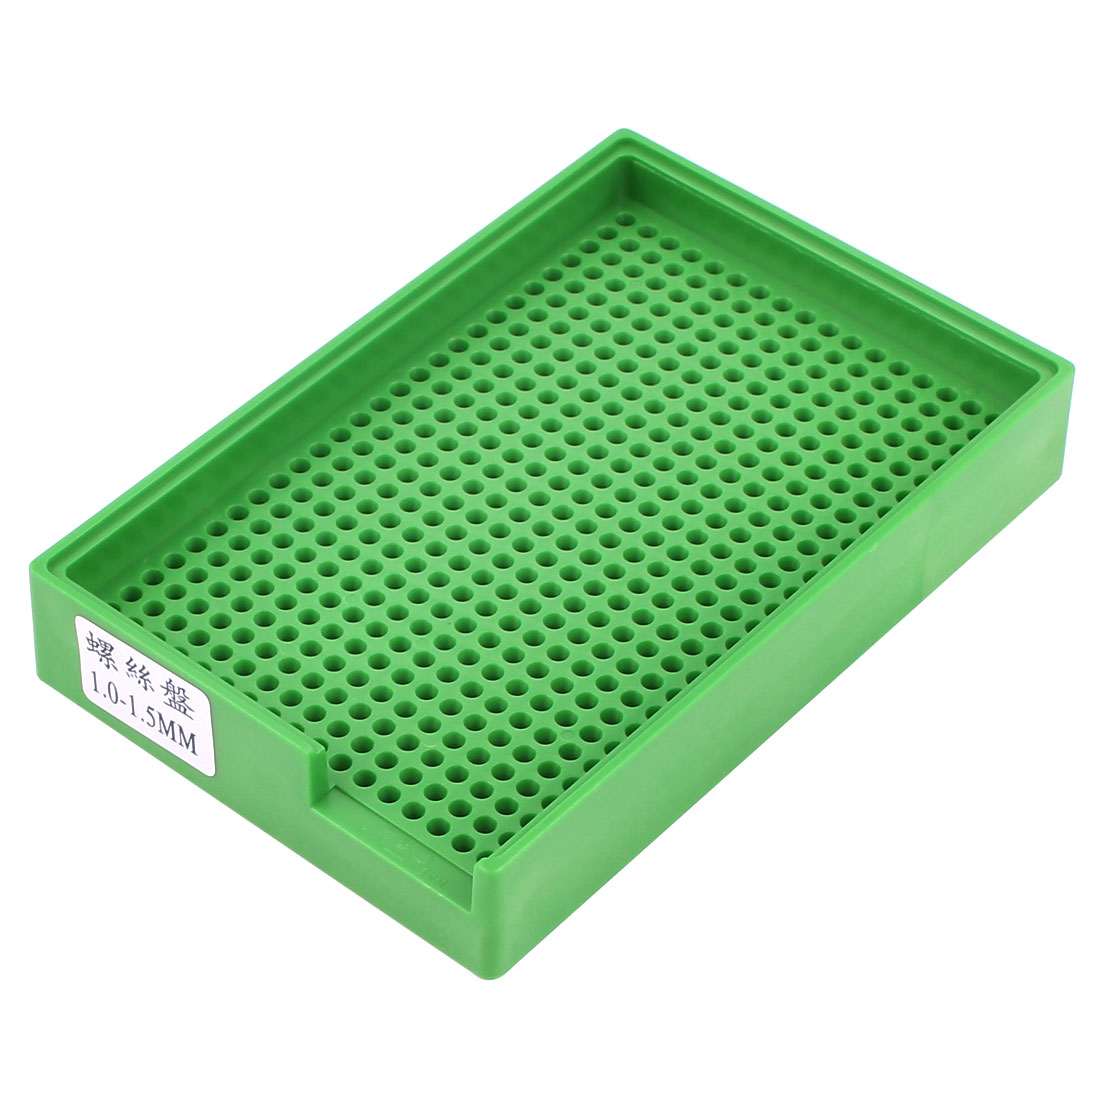 Anti-static Plastic Tray Holder Green 459 Holes for 1.0mm-1.5mm Screws